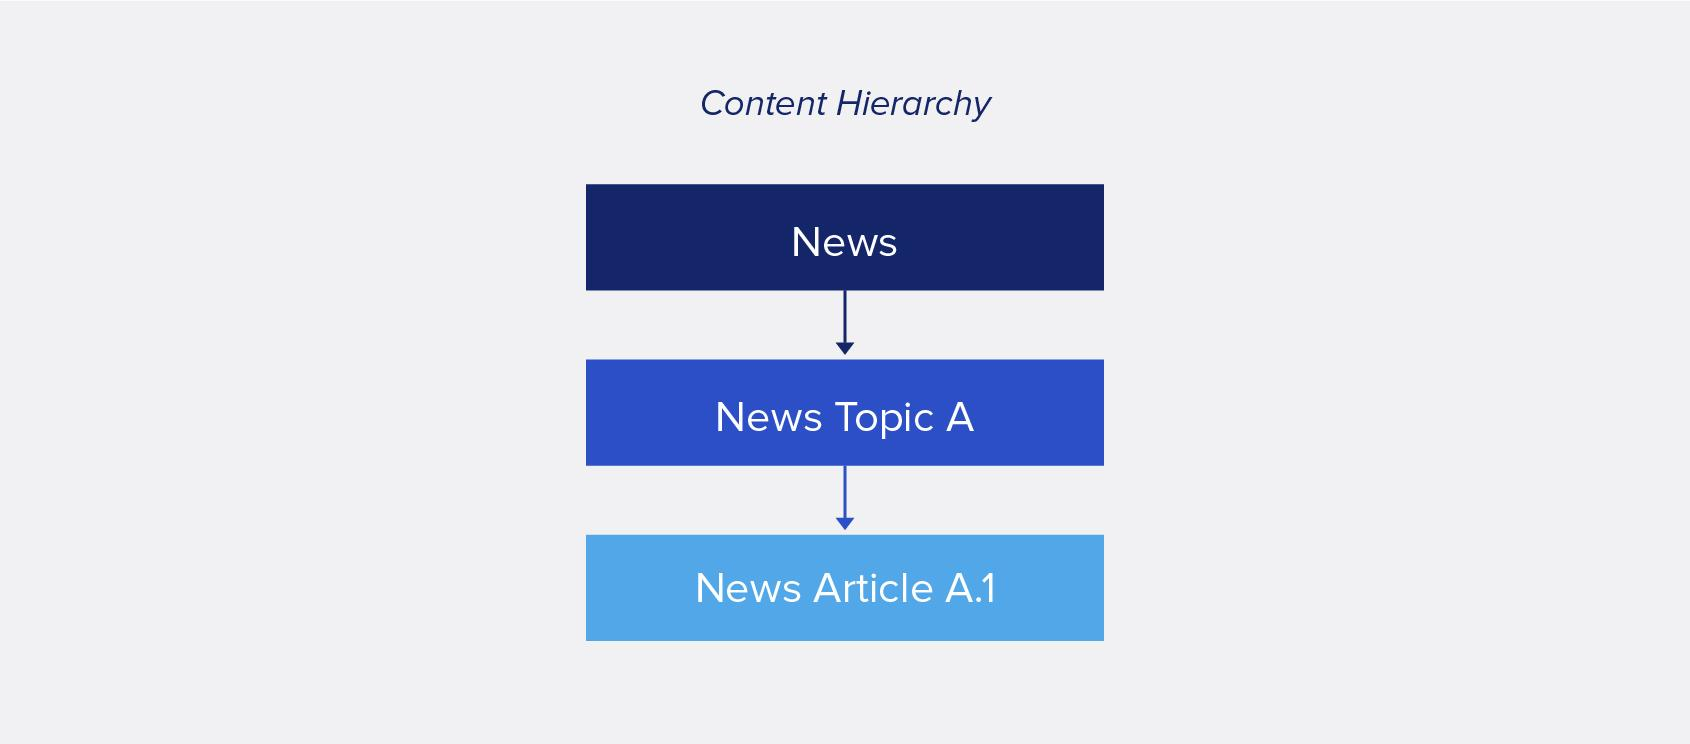 Example of content hierarchy: News flows to News Topic A flows to News Article A.1